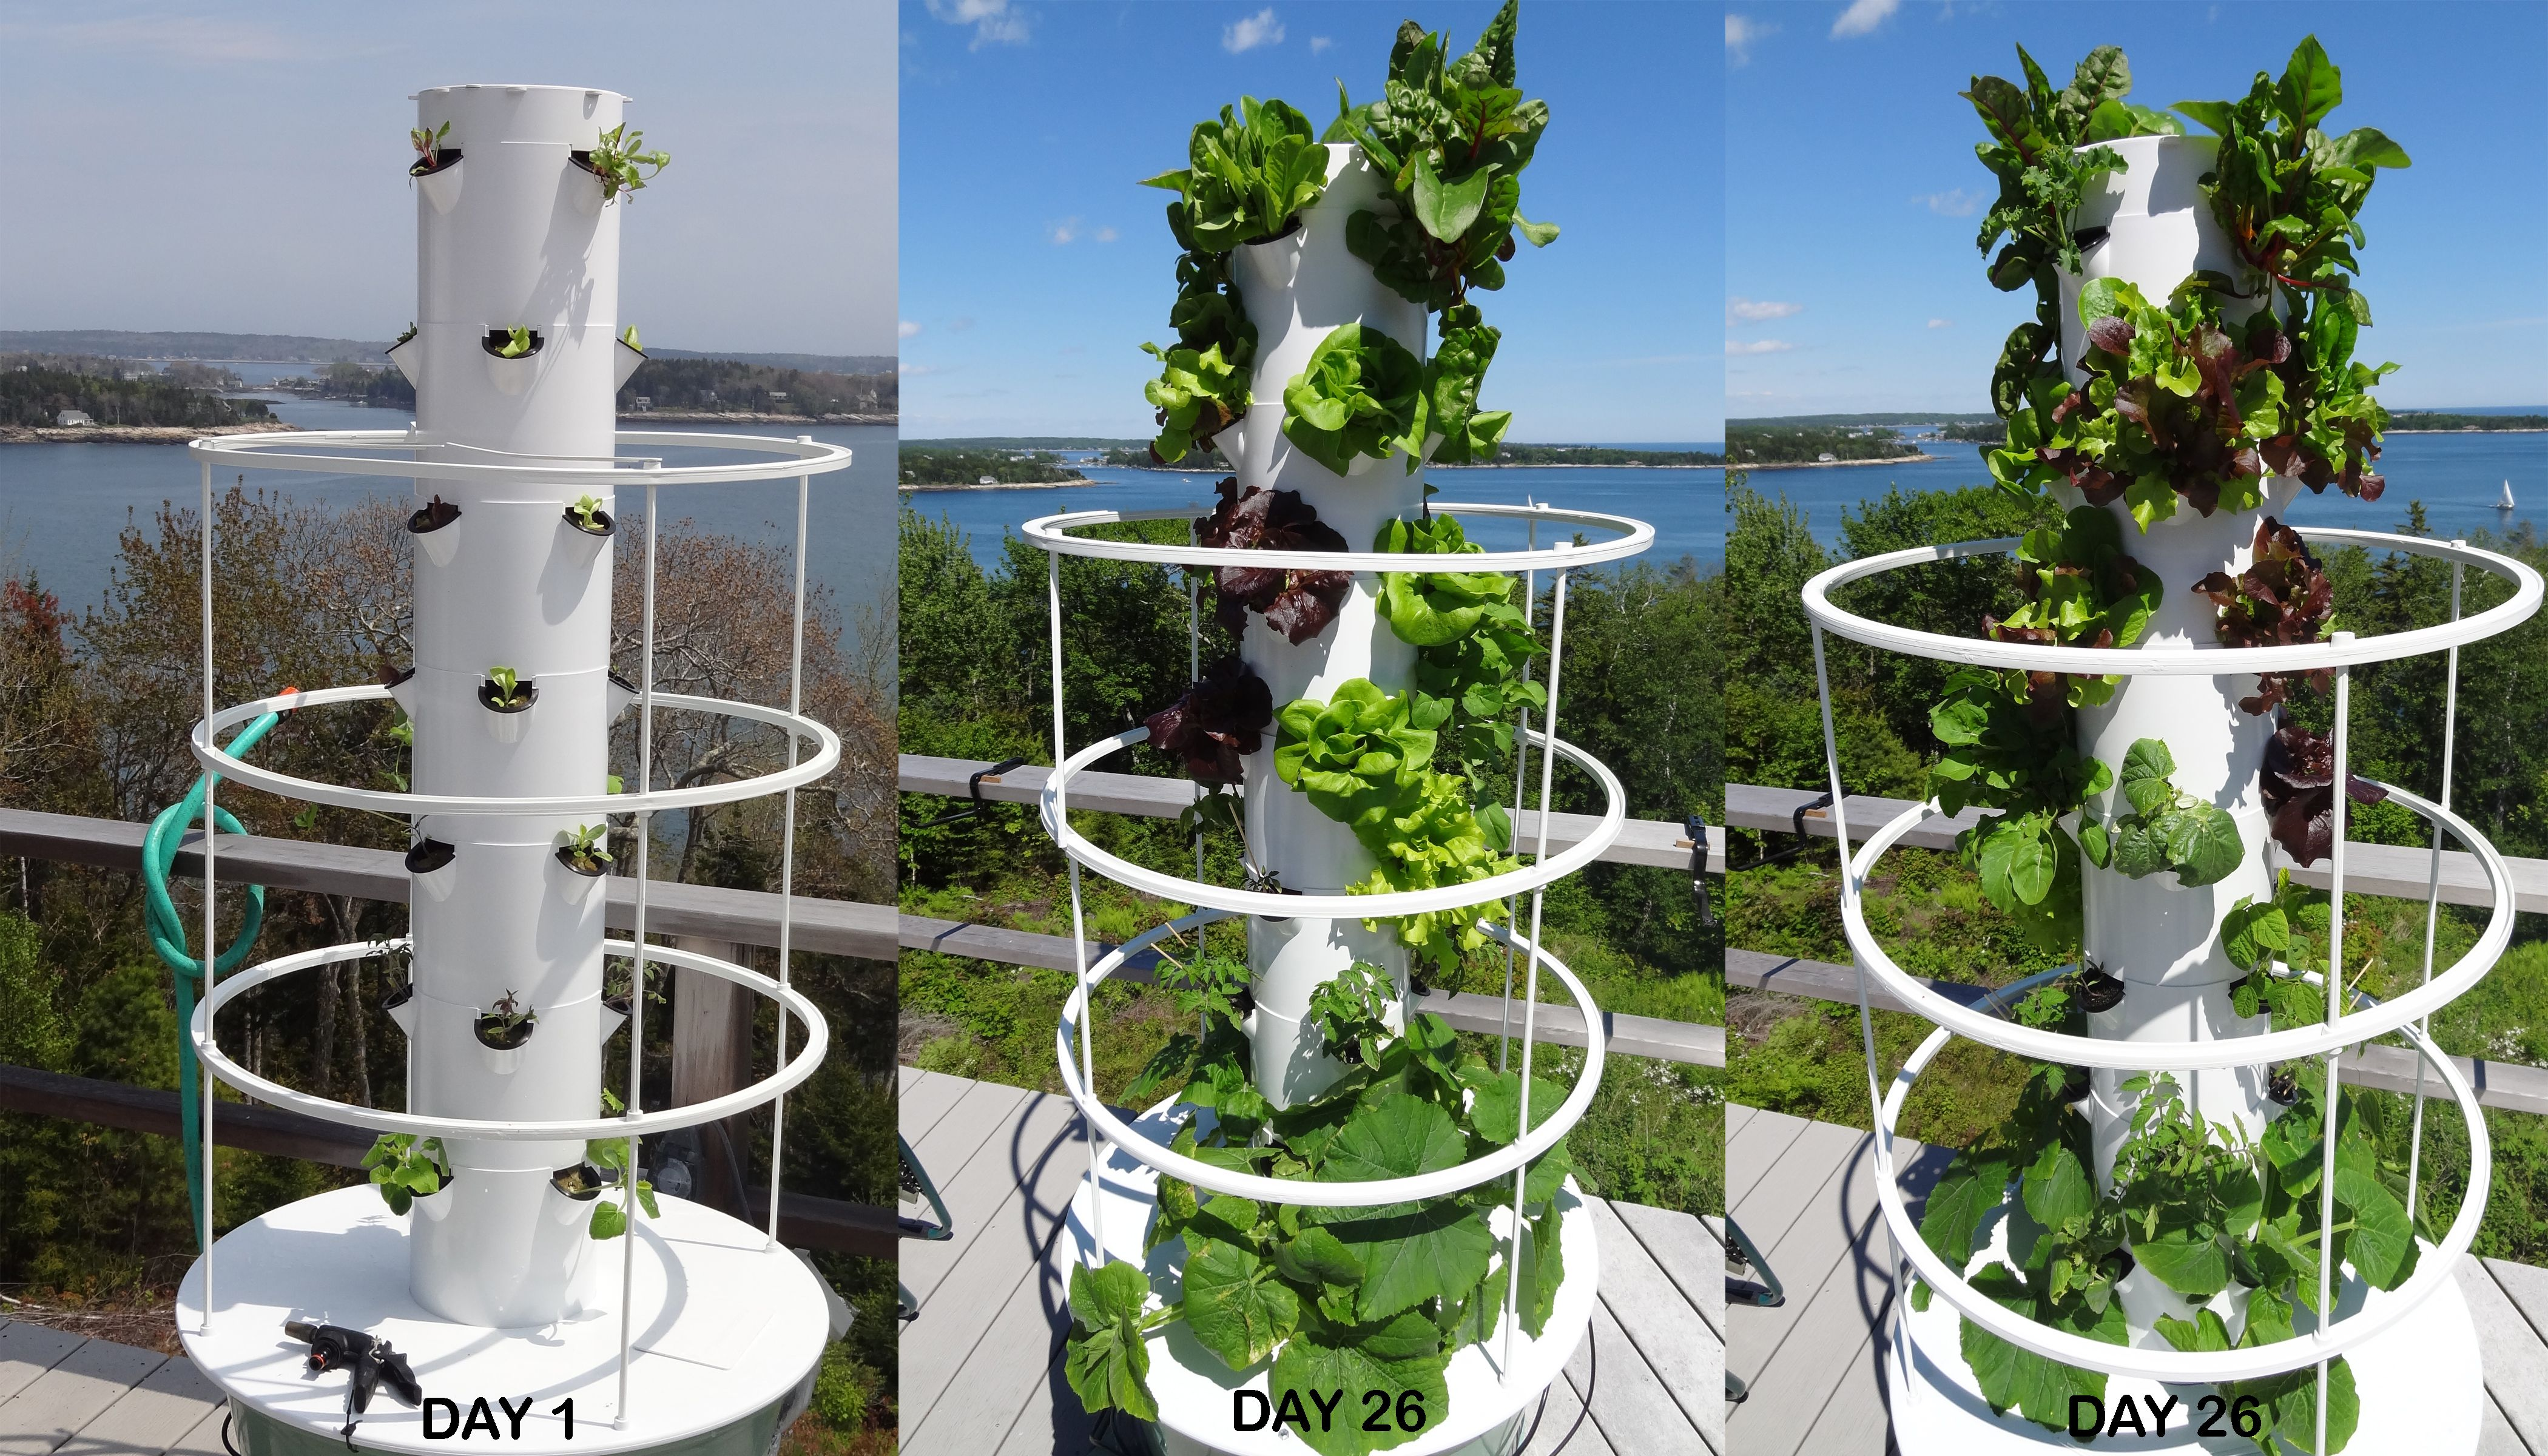 My Aeroponic Tower Garden At Day 26